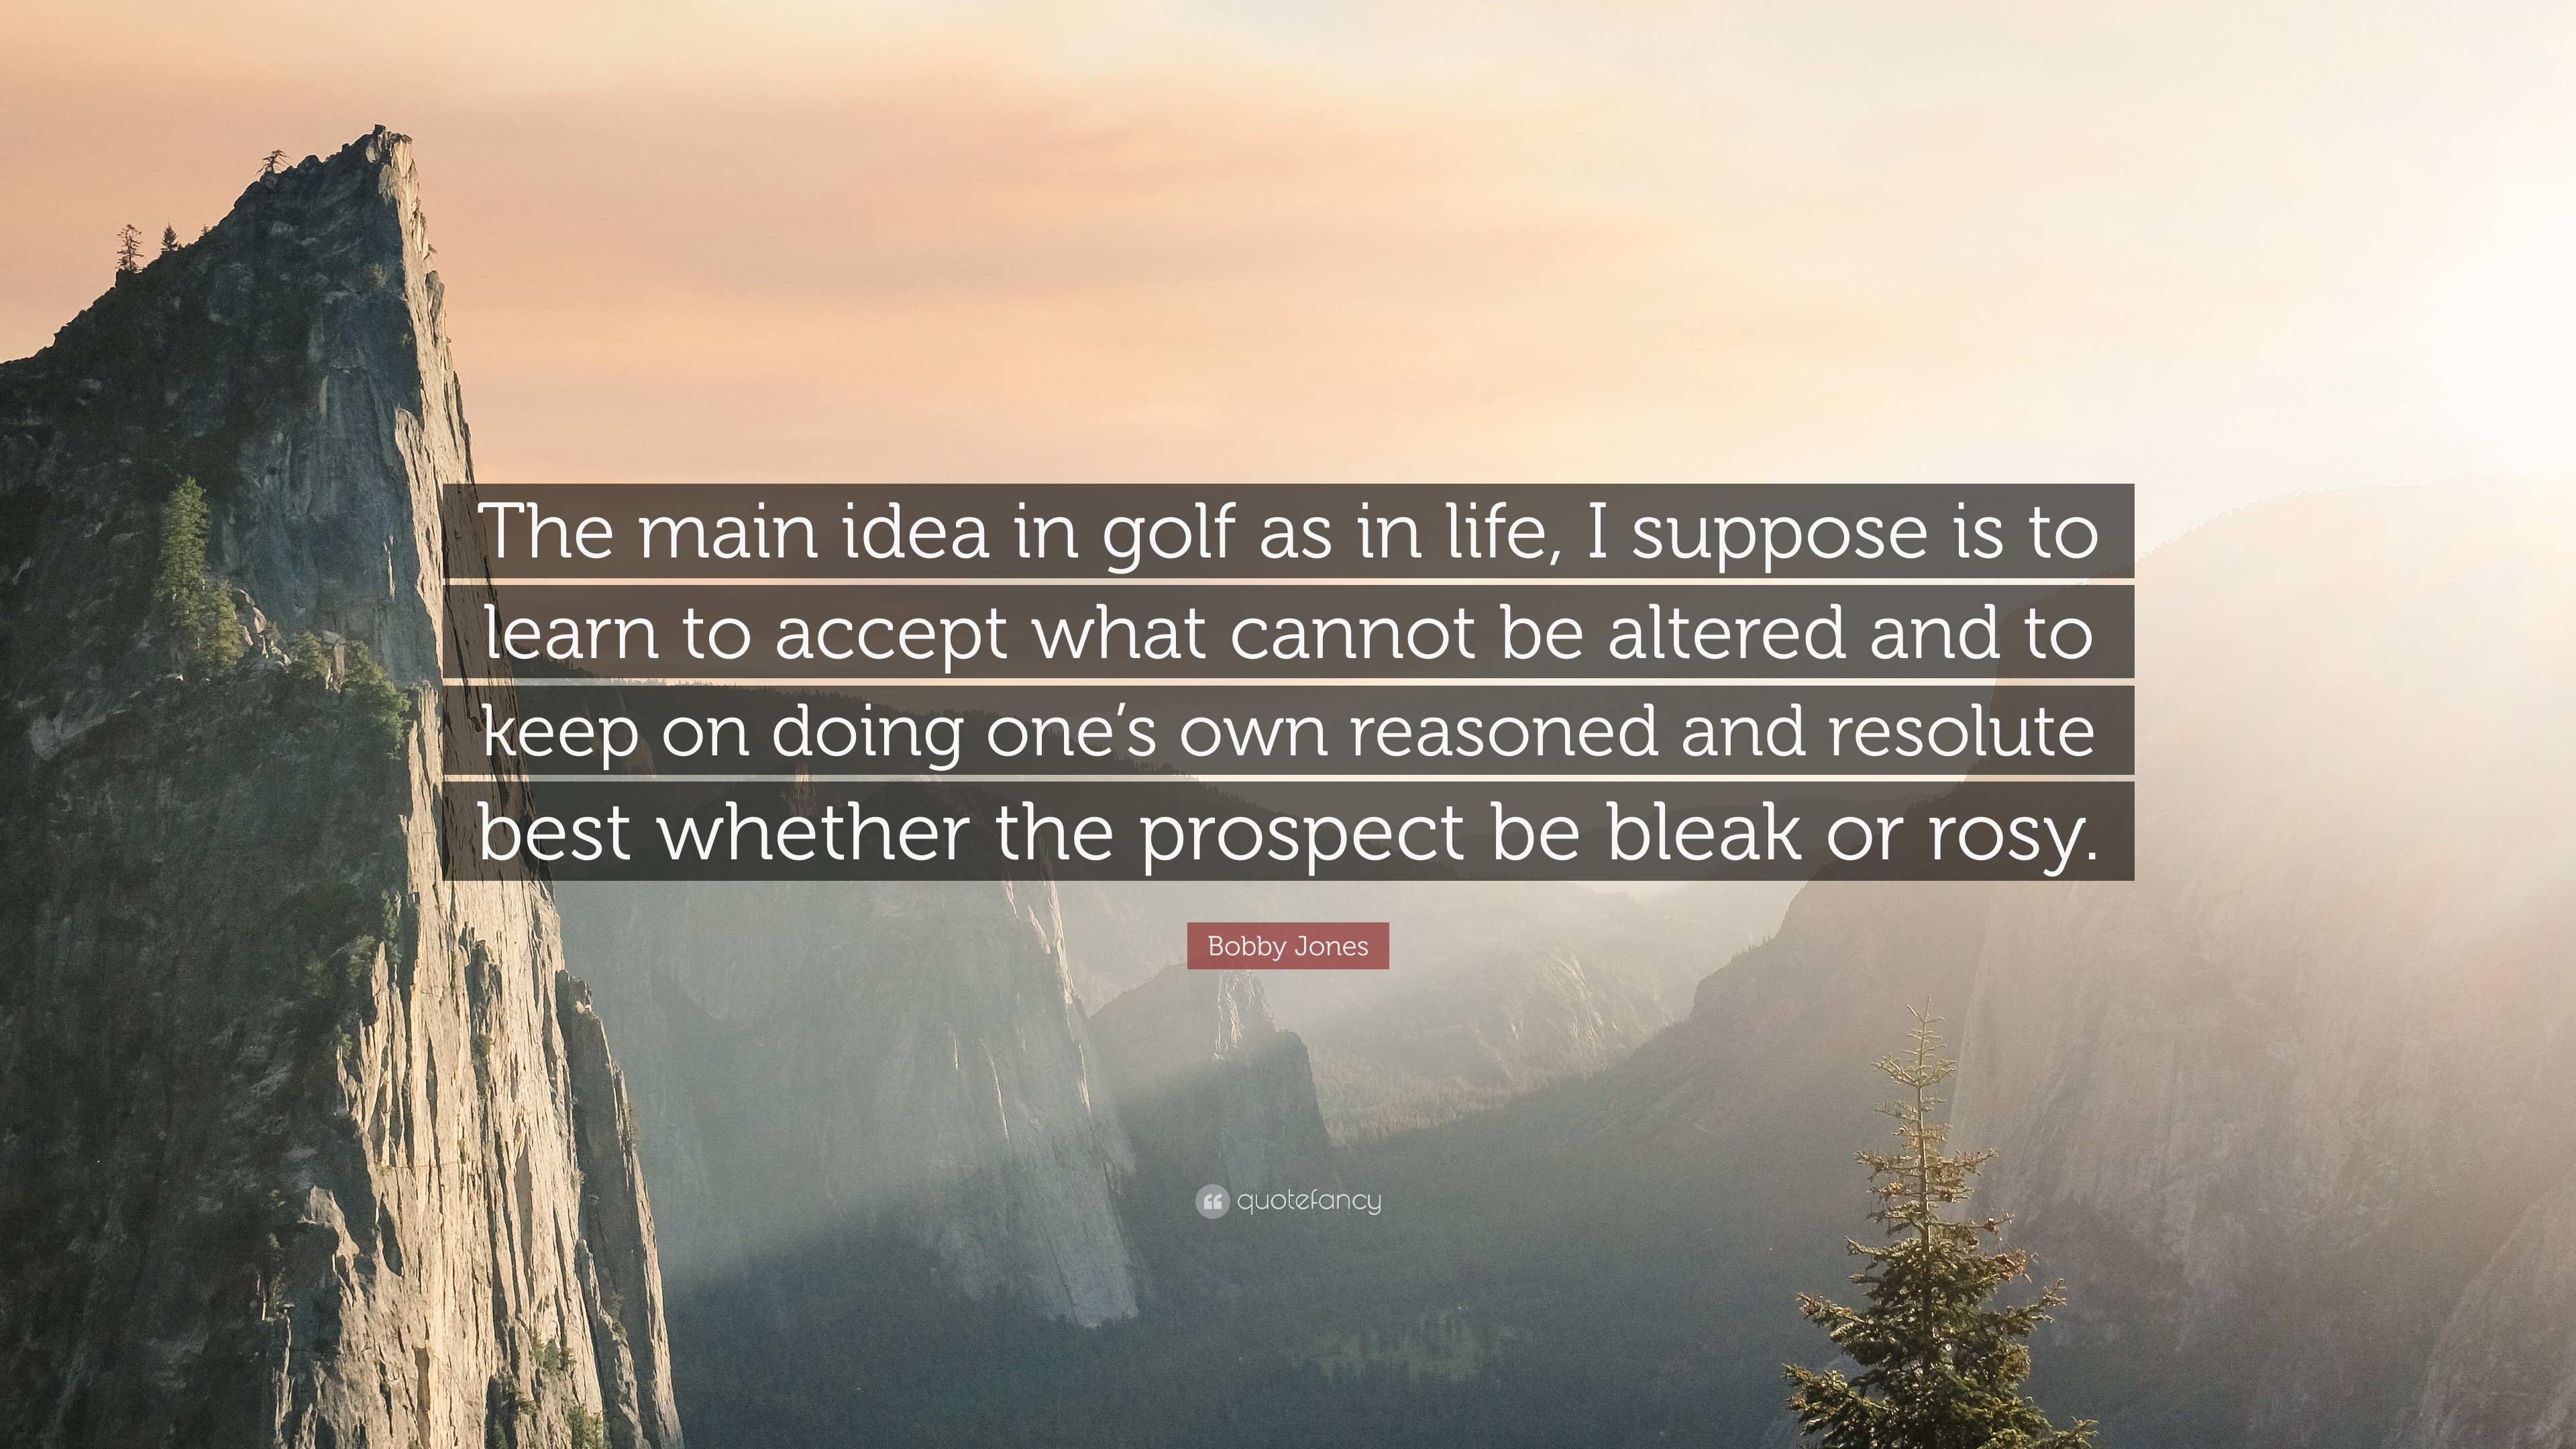 Golf Quotes About Life Bobby Jones Quotes 56 Wallpapers  Quotefancy